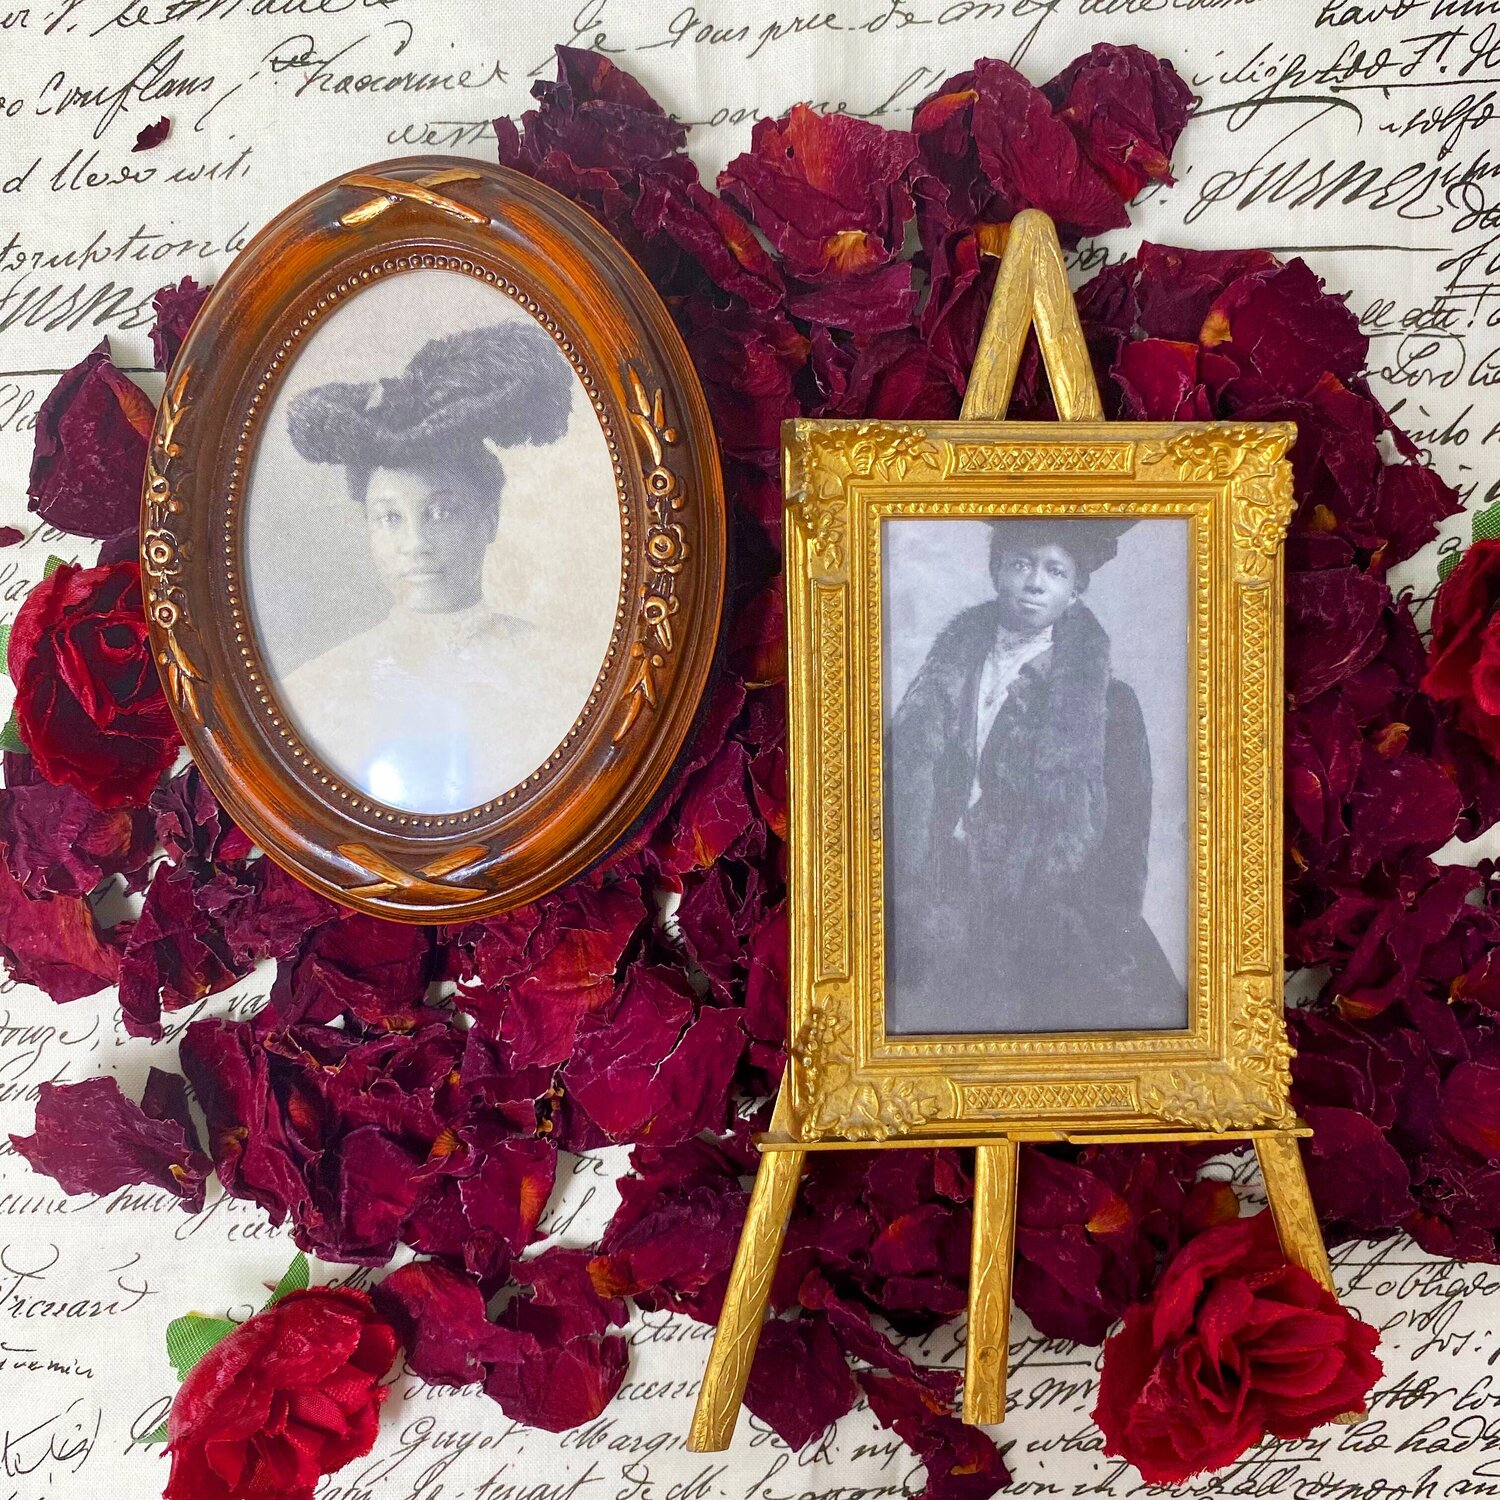 Antique 19th Century Portraits of Two Elegant Victorian African American Women, image courtesy of Tanzy Ward